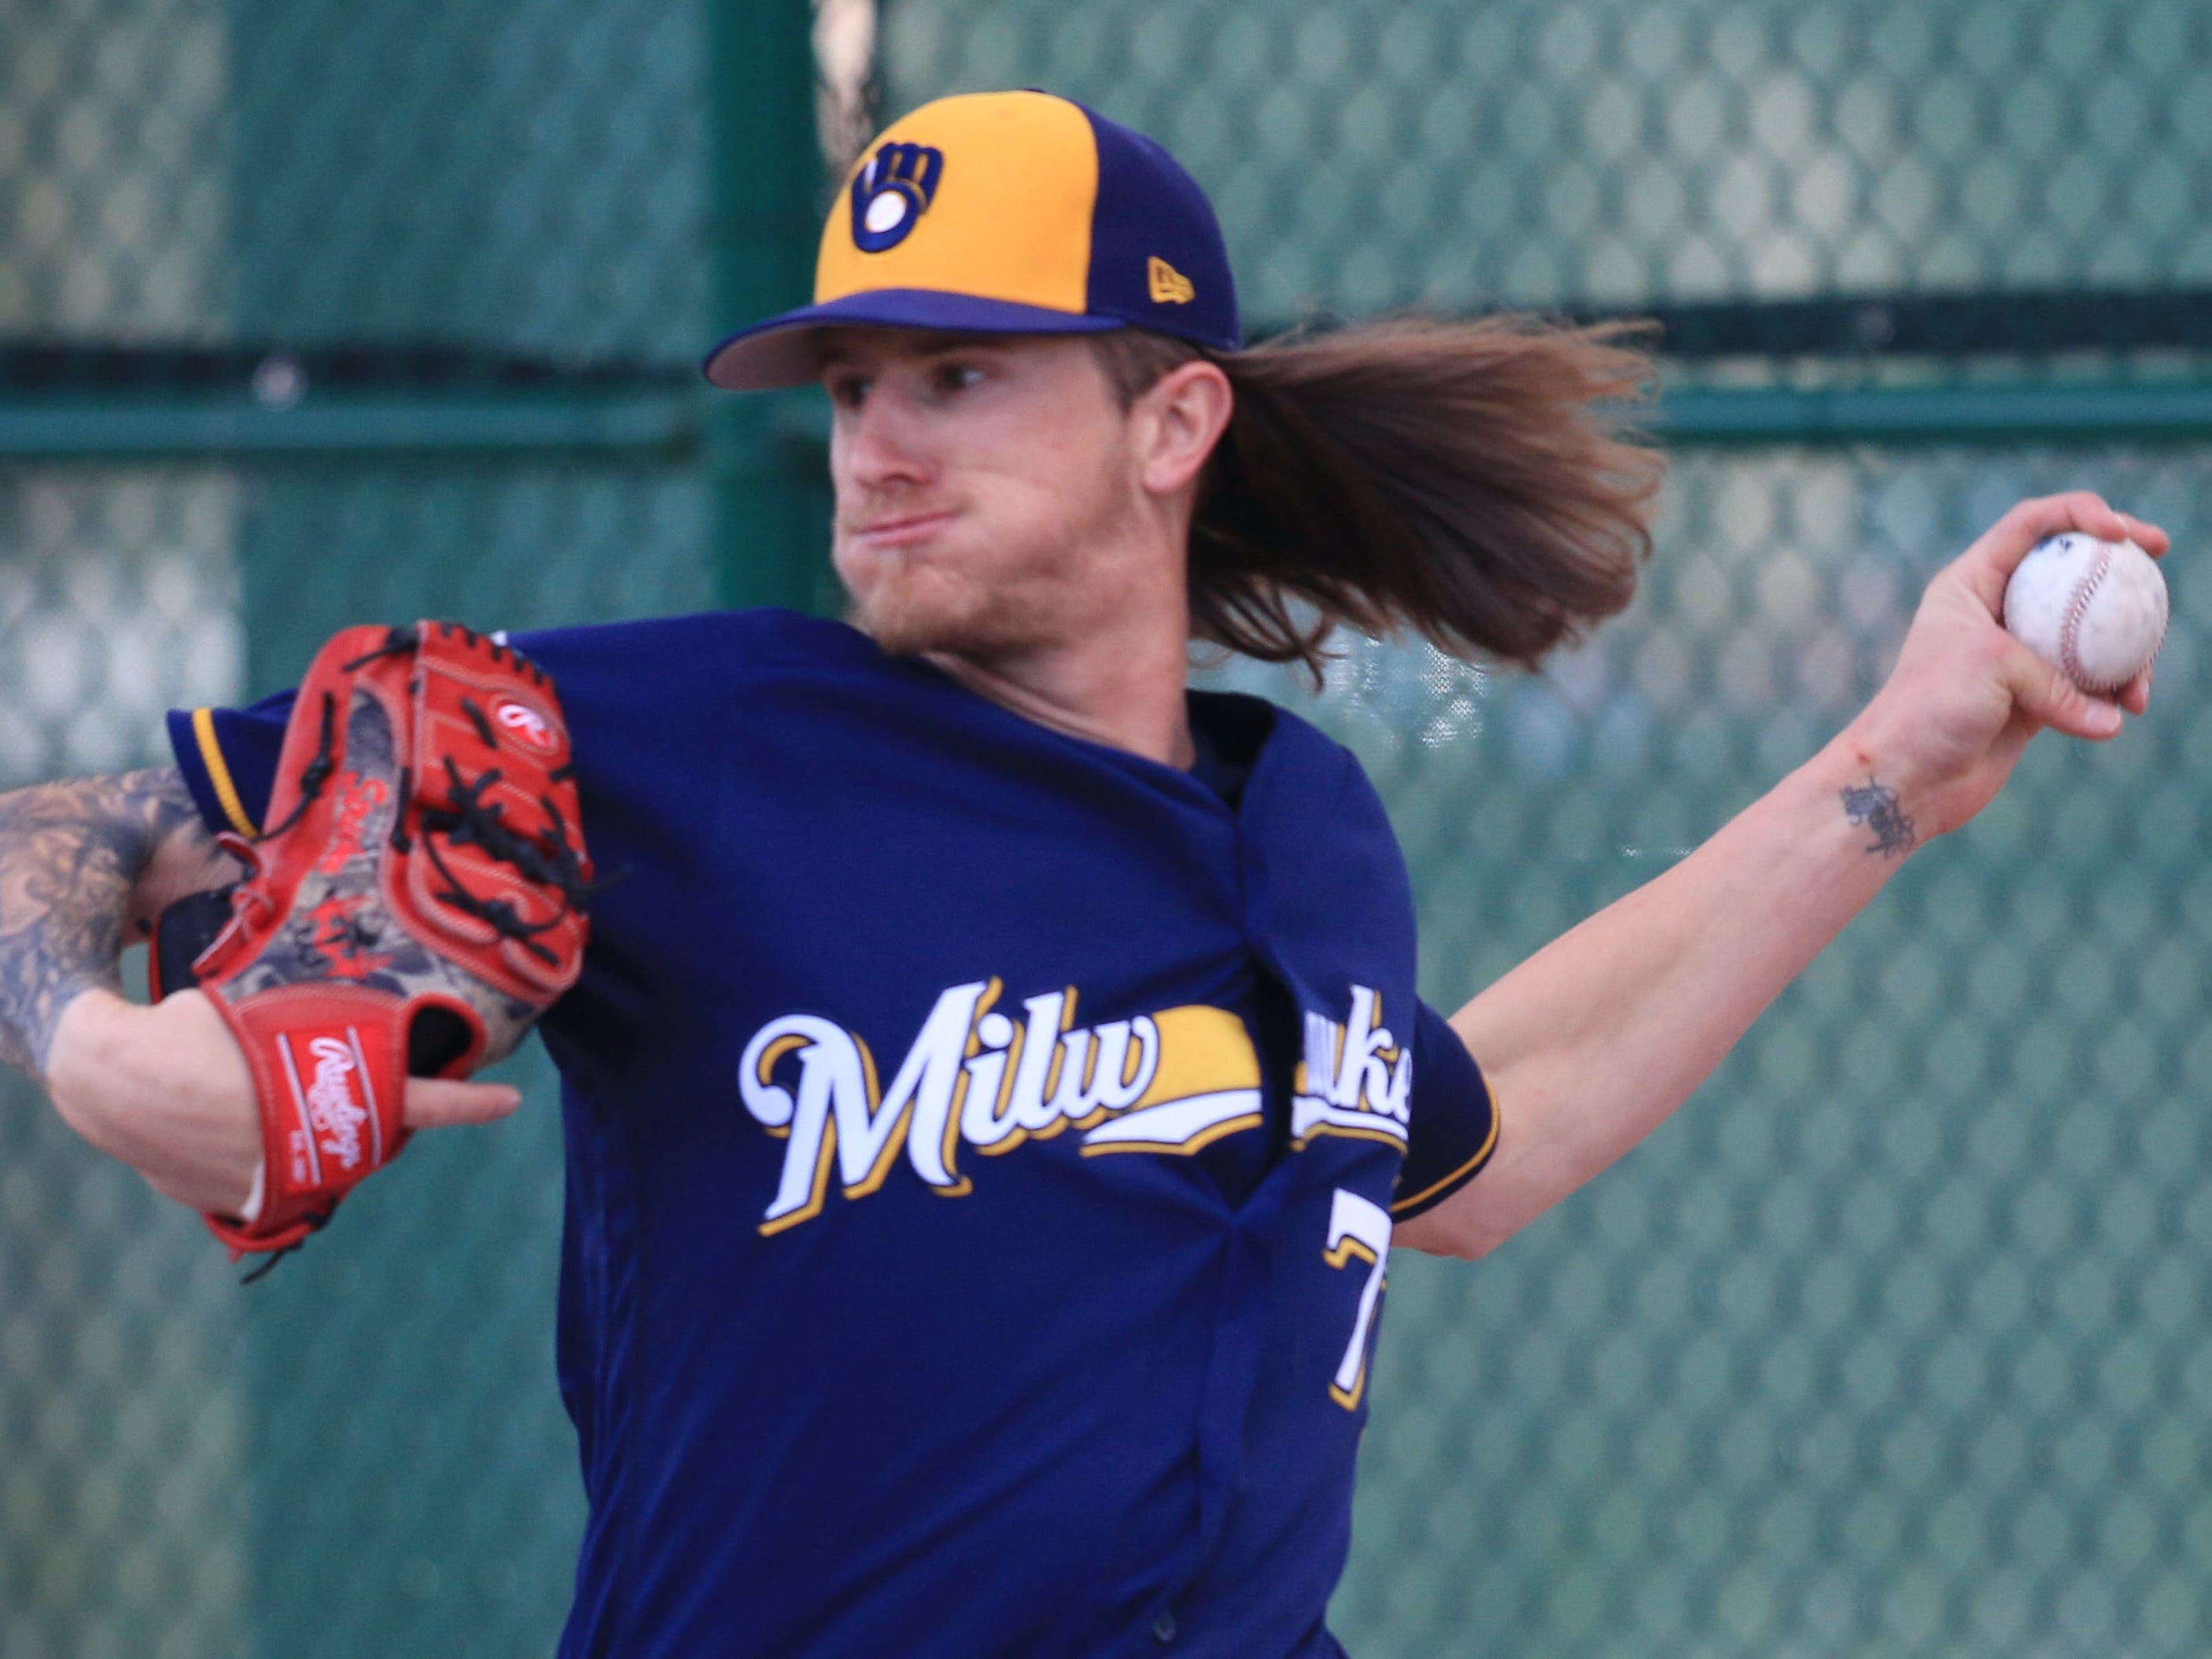 Brewers pitcher Josh Hader gets ready to uncork a pitch during a bullpen session Saturday.